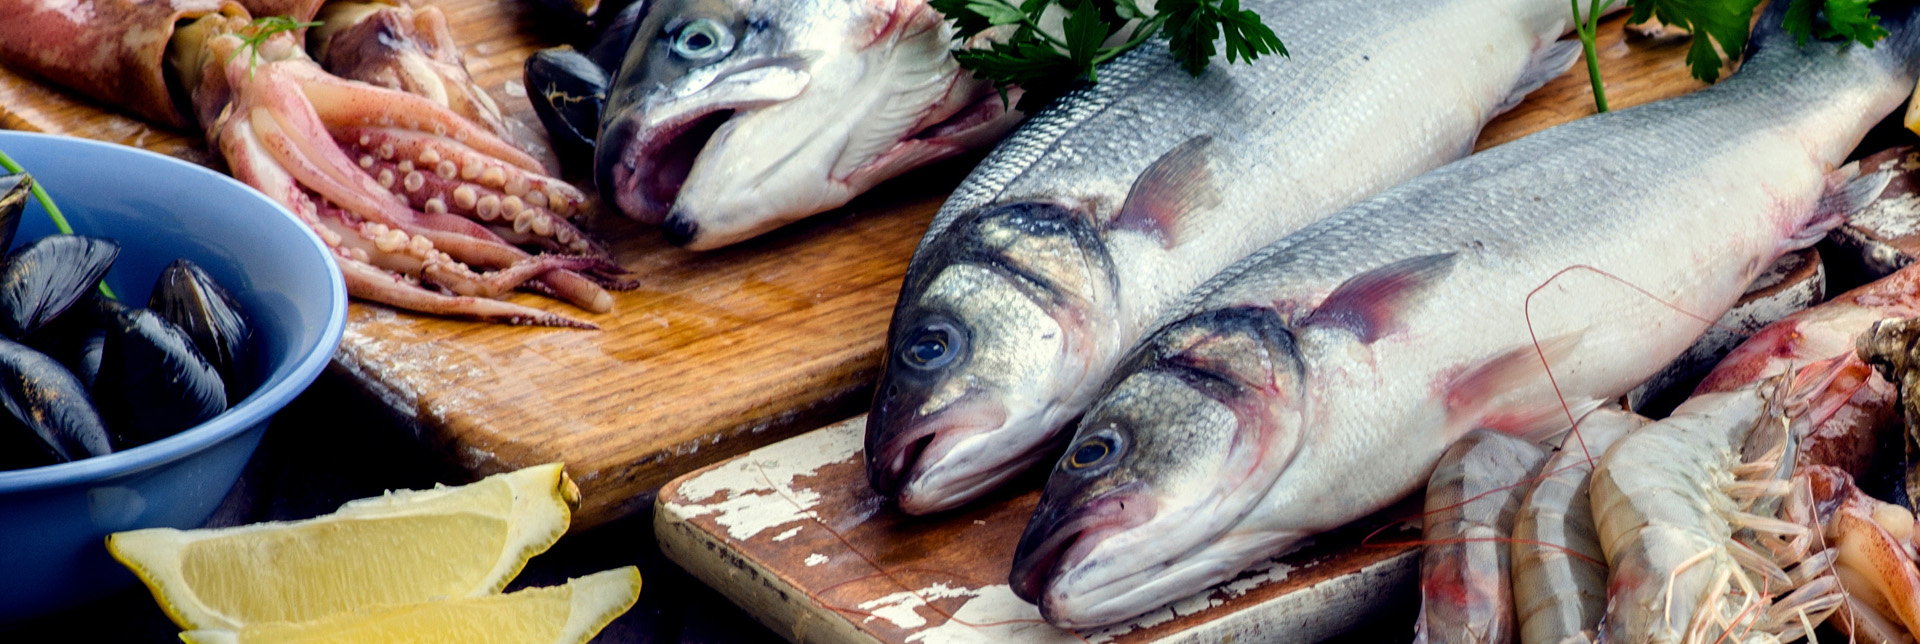 Sustainable Fisheries | The MSC Label